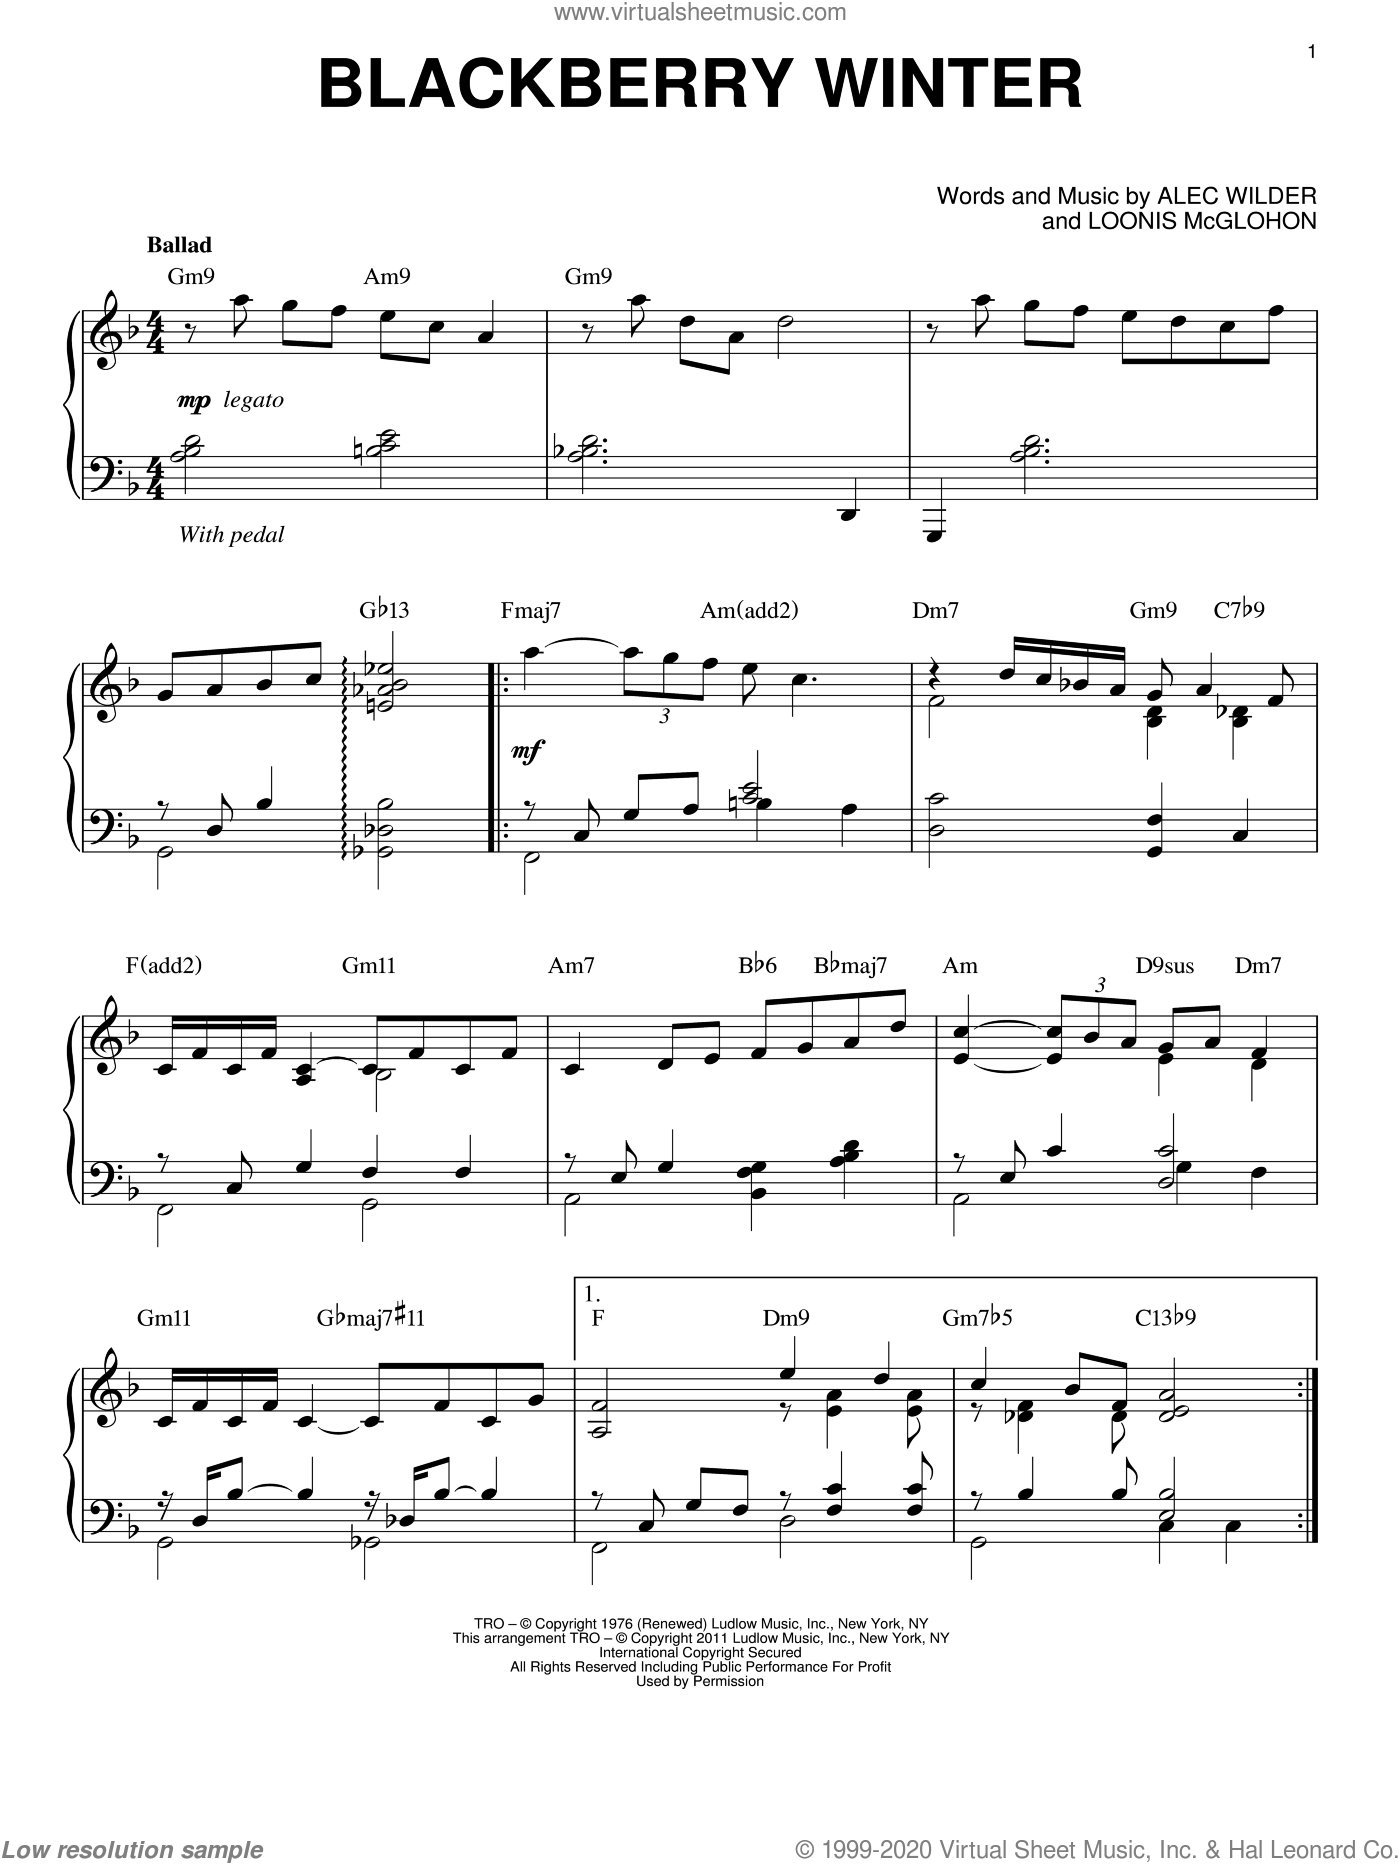 Blackberry Winter (arr. Brent Edstrom) sheet music for piano solo by Alec Wilder and Loonis McGlohon, intermediate skill level